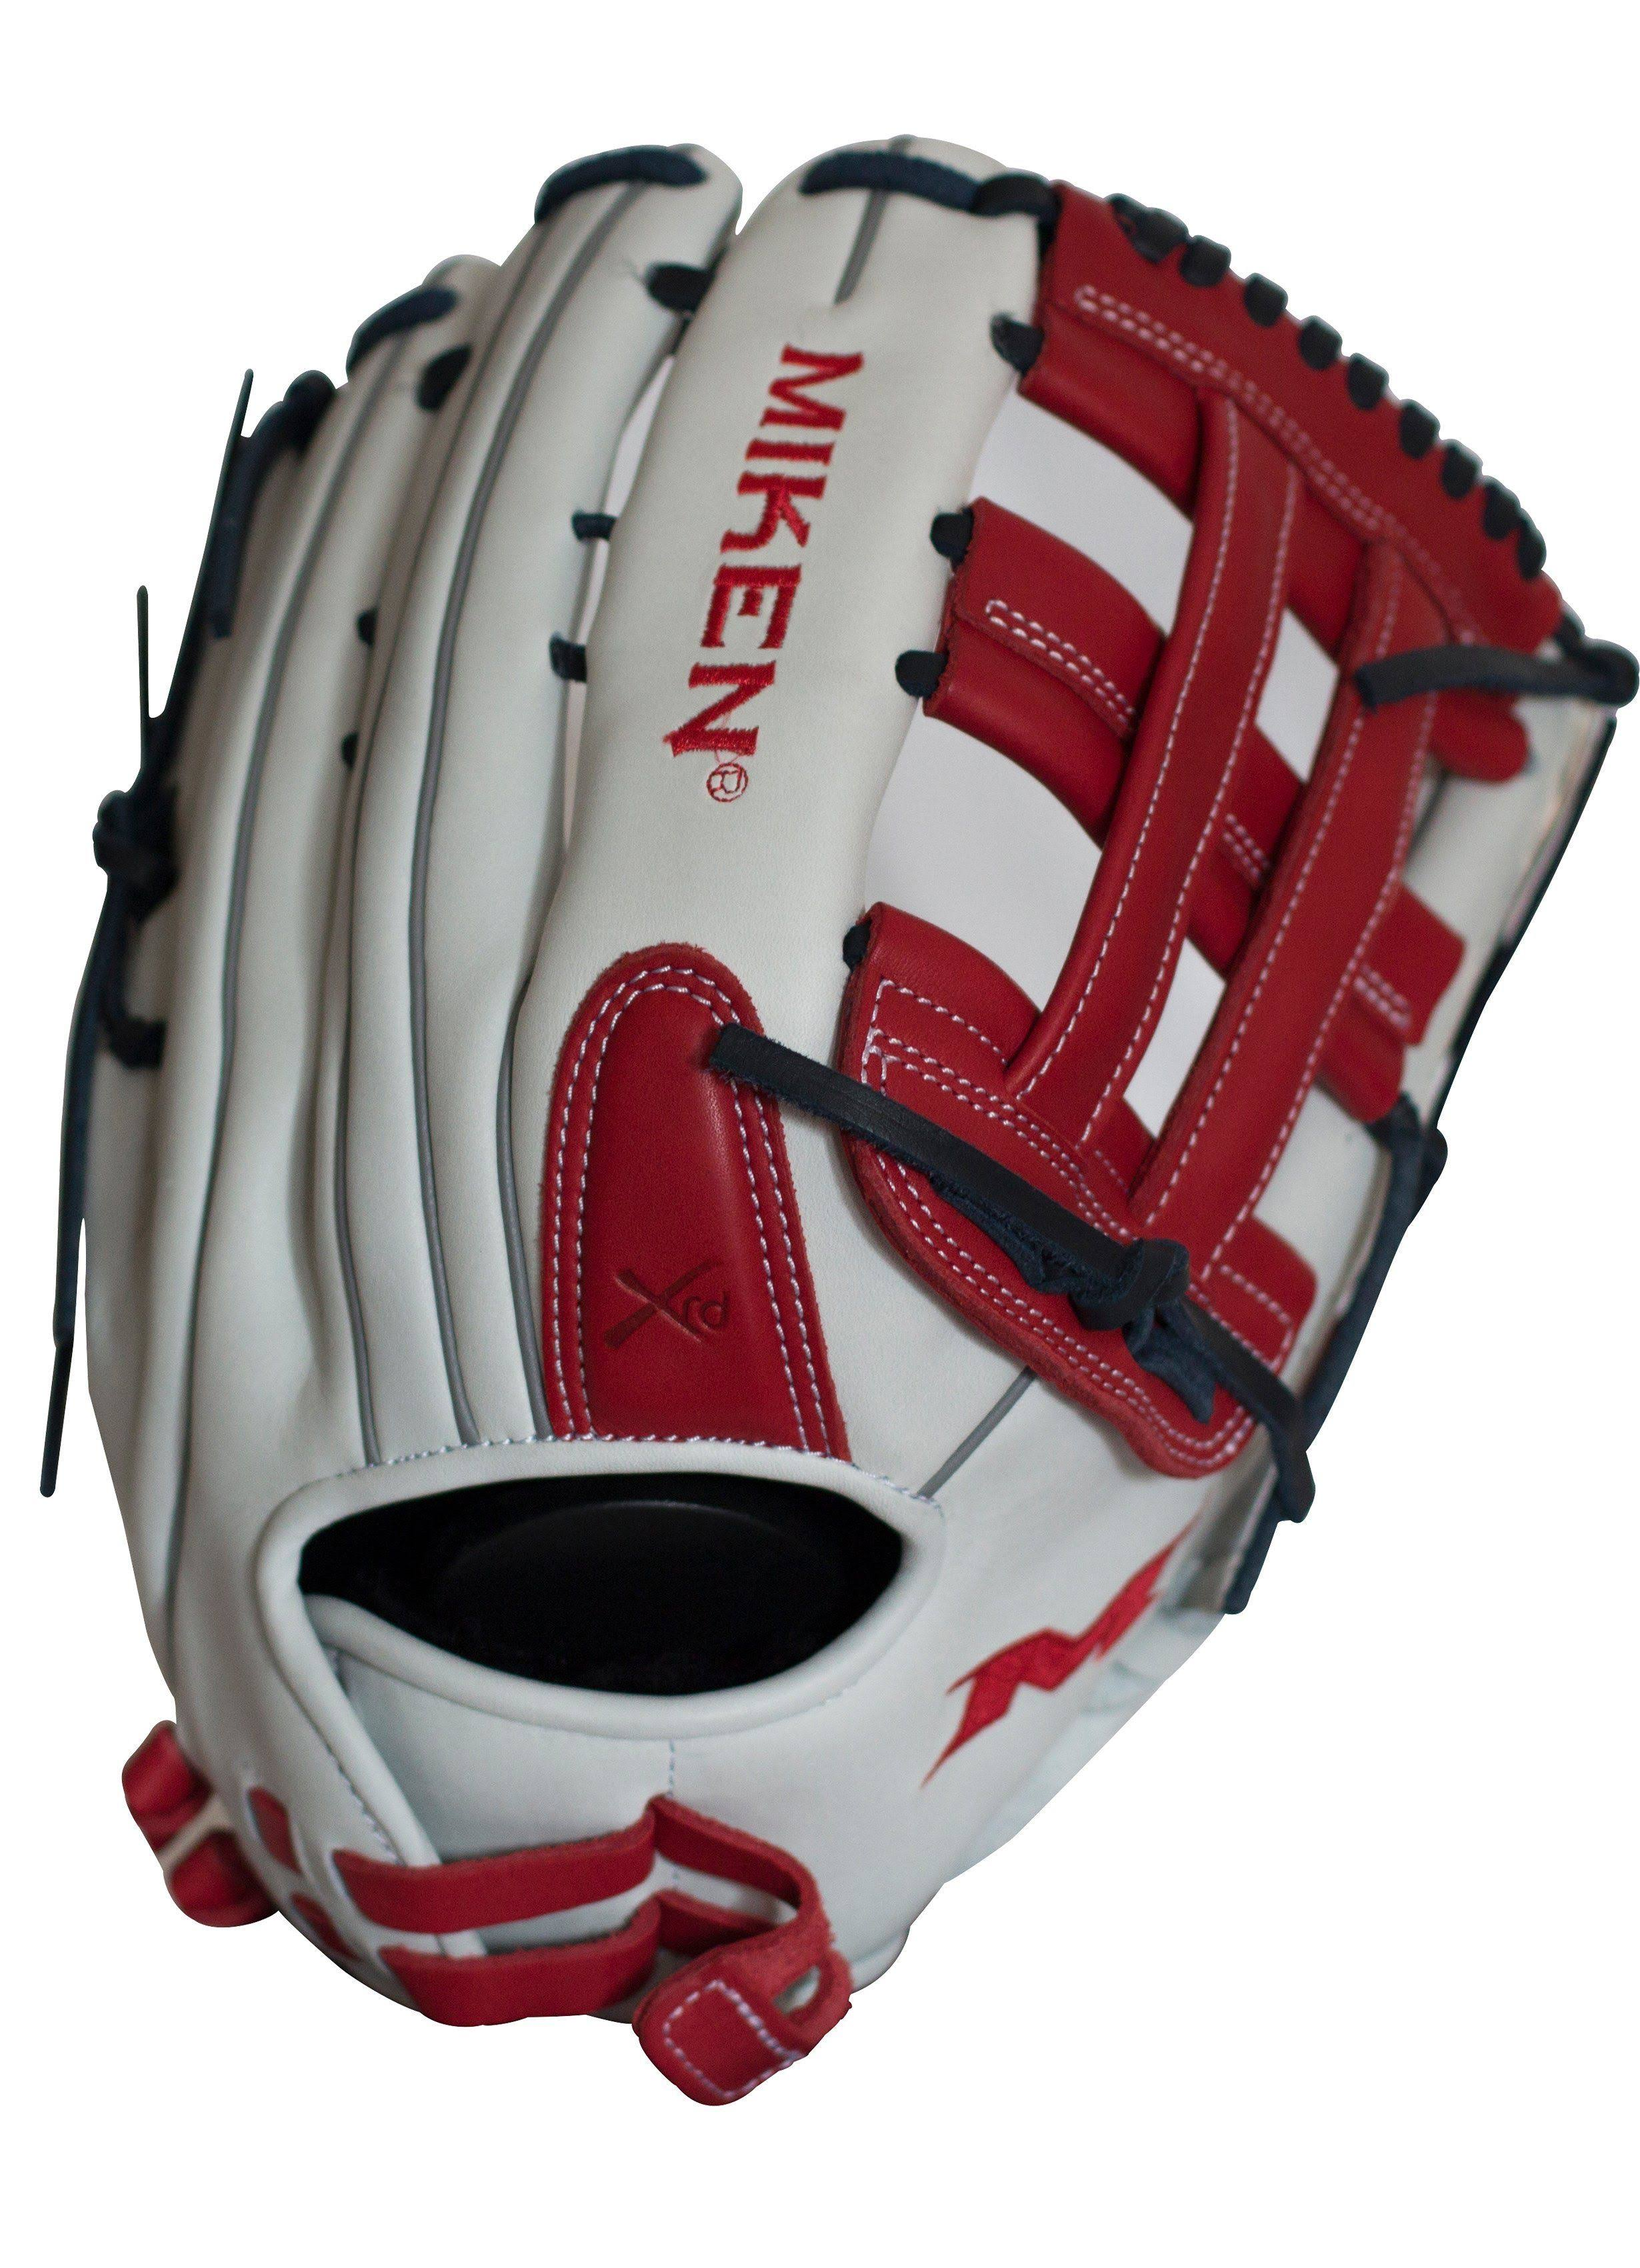 miken-pro-series-14-in-slowpitch-softball-glove-left-hand-throw PRO140-WSN-LeftHandThrow  658925039904 <span>Miken Pro Series 14 slow pitch softball glove features soft full-grain